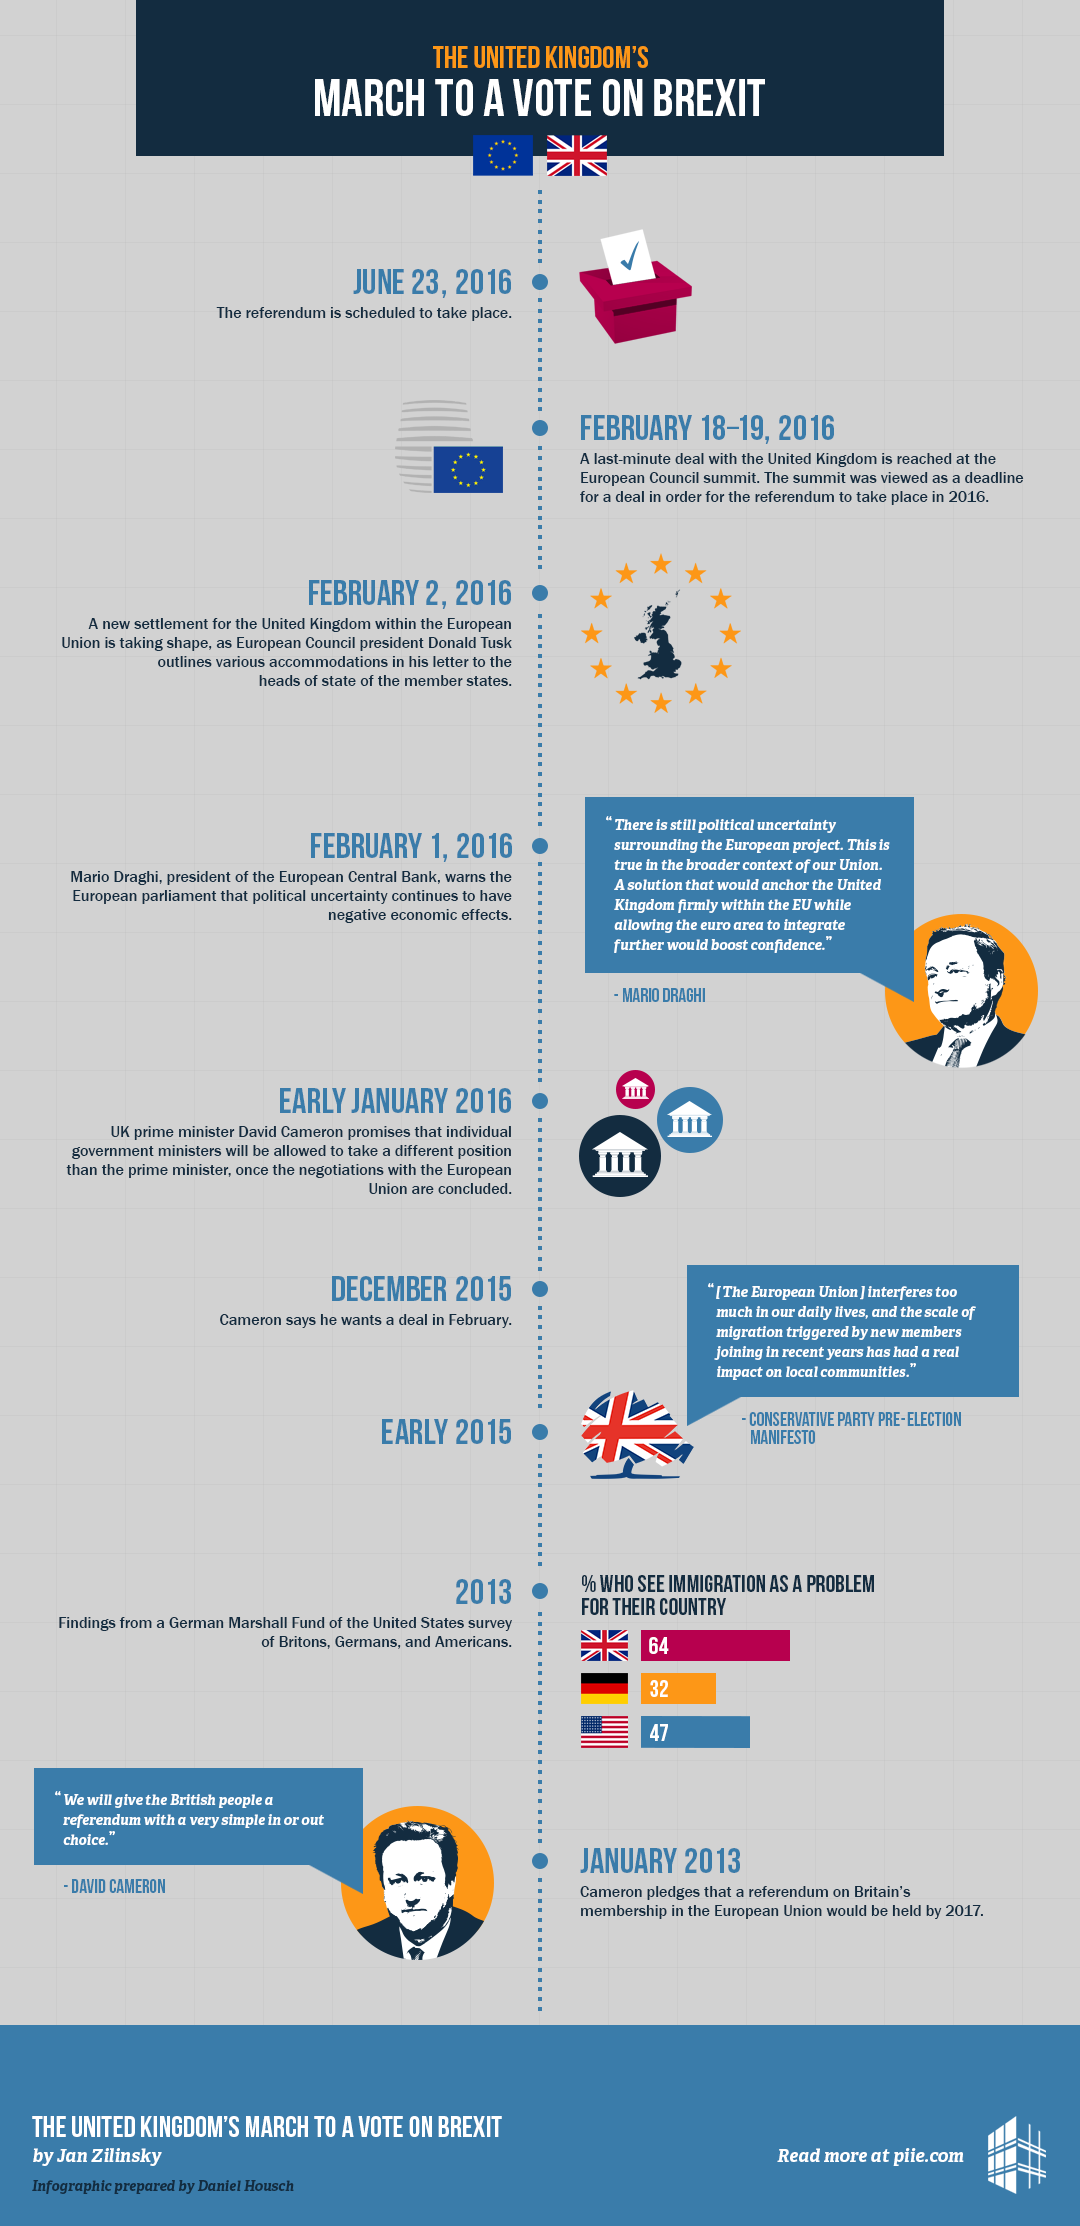 info1 - UK in EU: A Timeline from Membership to Brexit